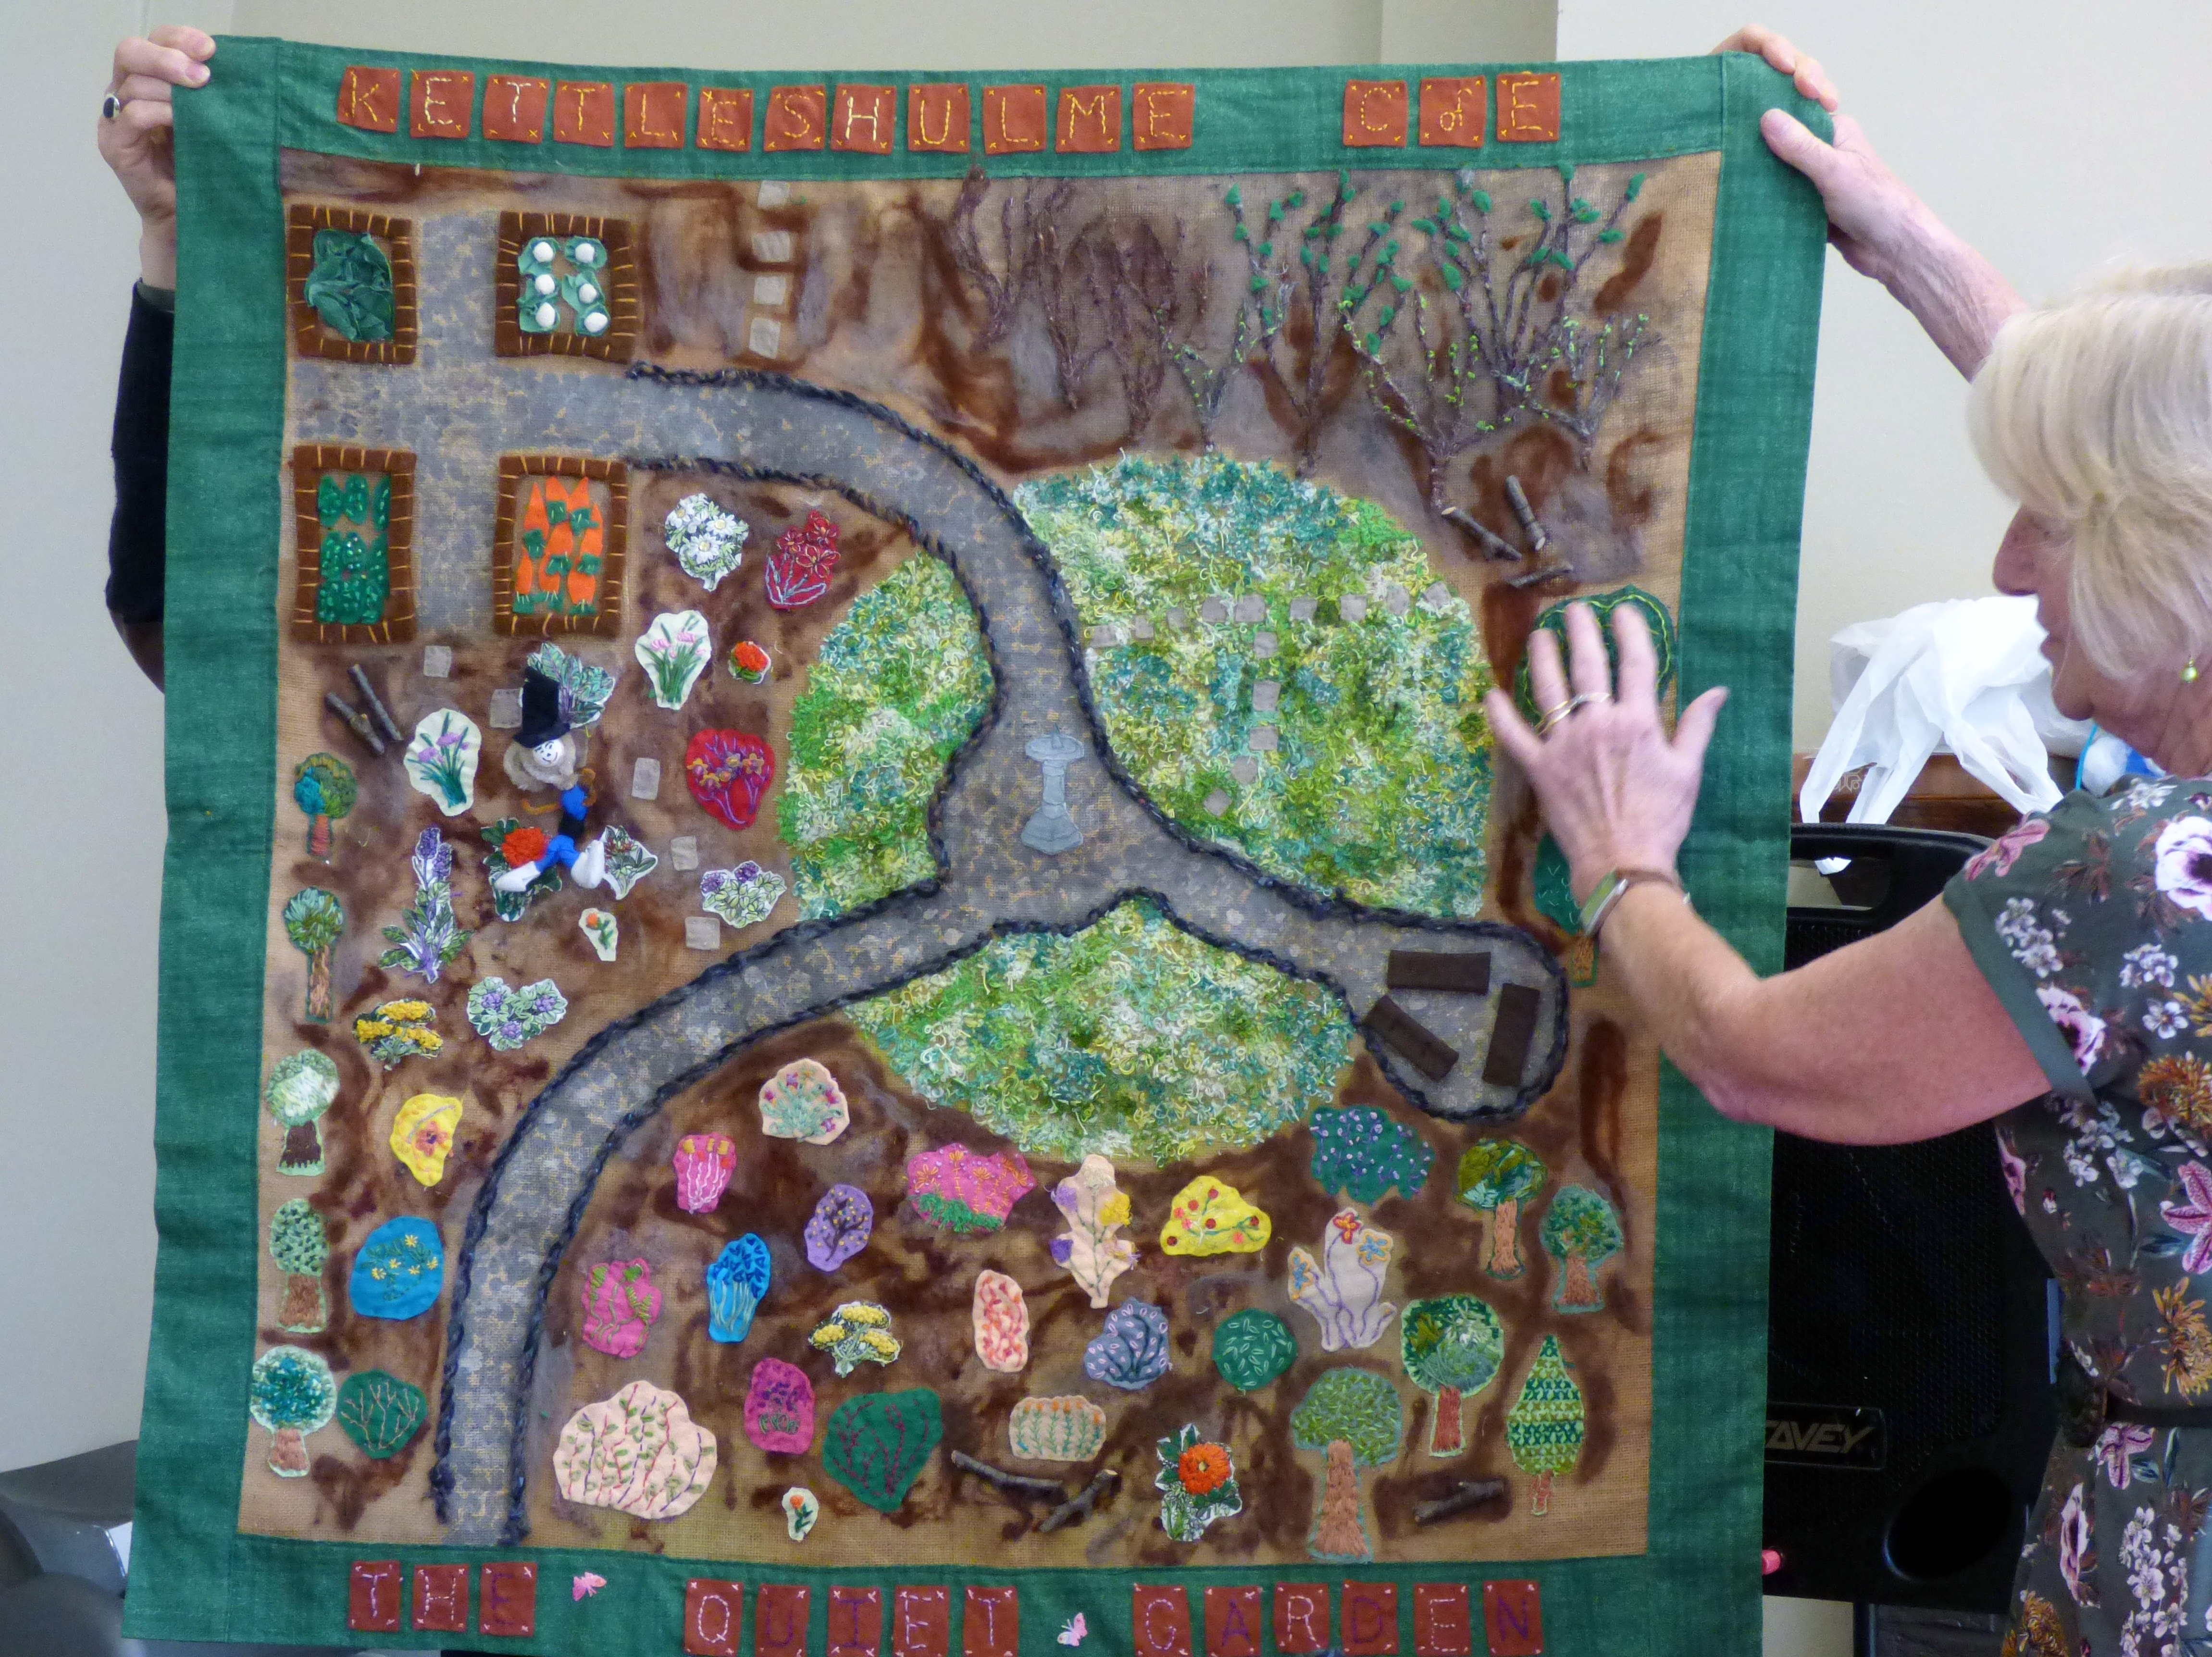 THE QUIET GARDEN Group Project made by children from Kettleshulme C of E school, Derbyshire